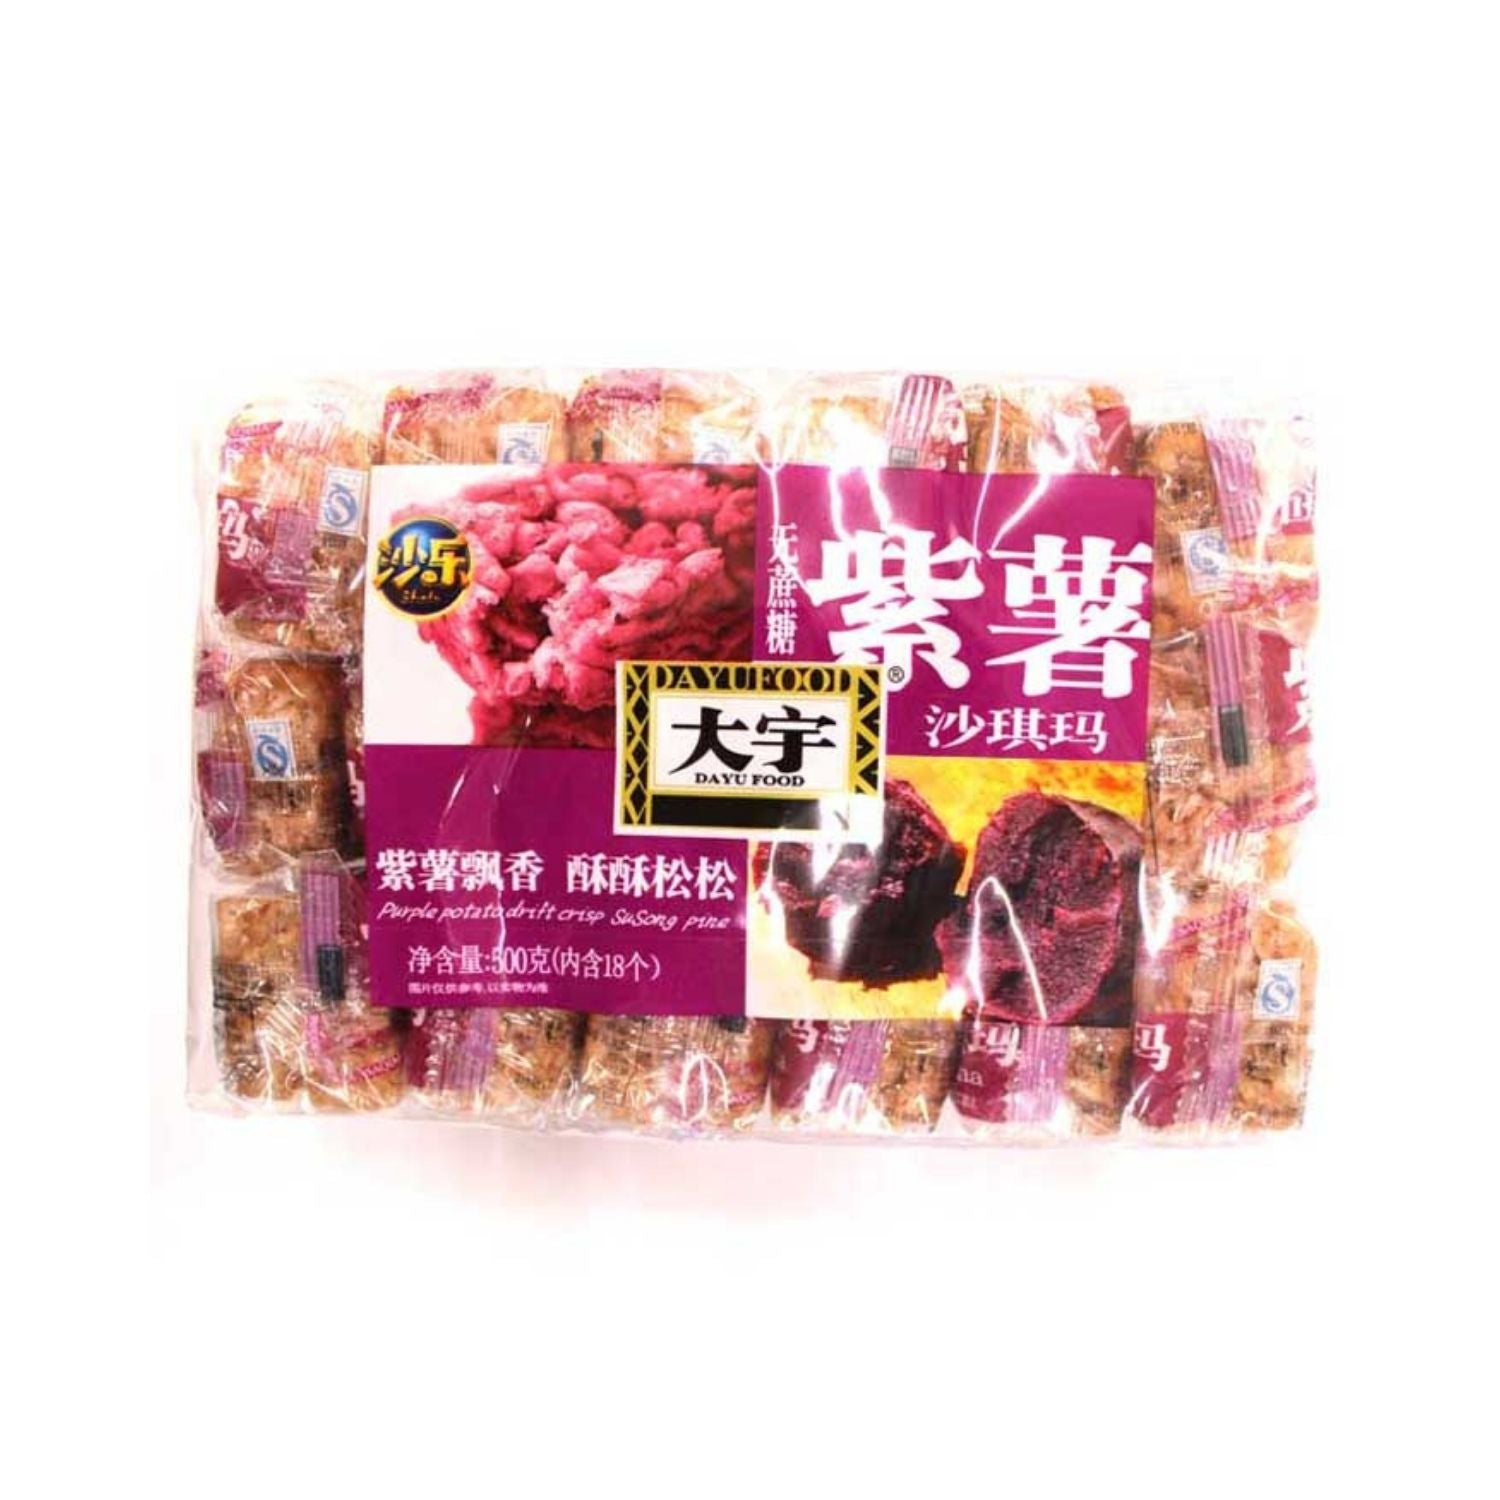 DaYu Sachima (Caramel Treat) Purple Yam Flavor